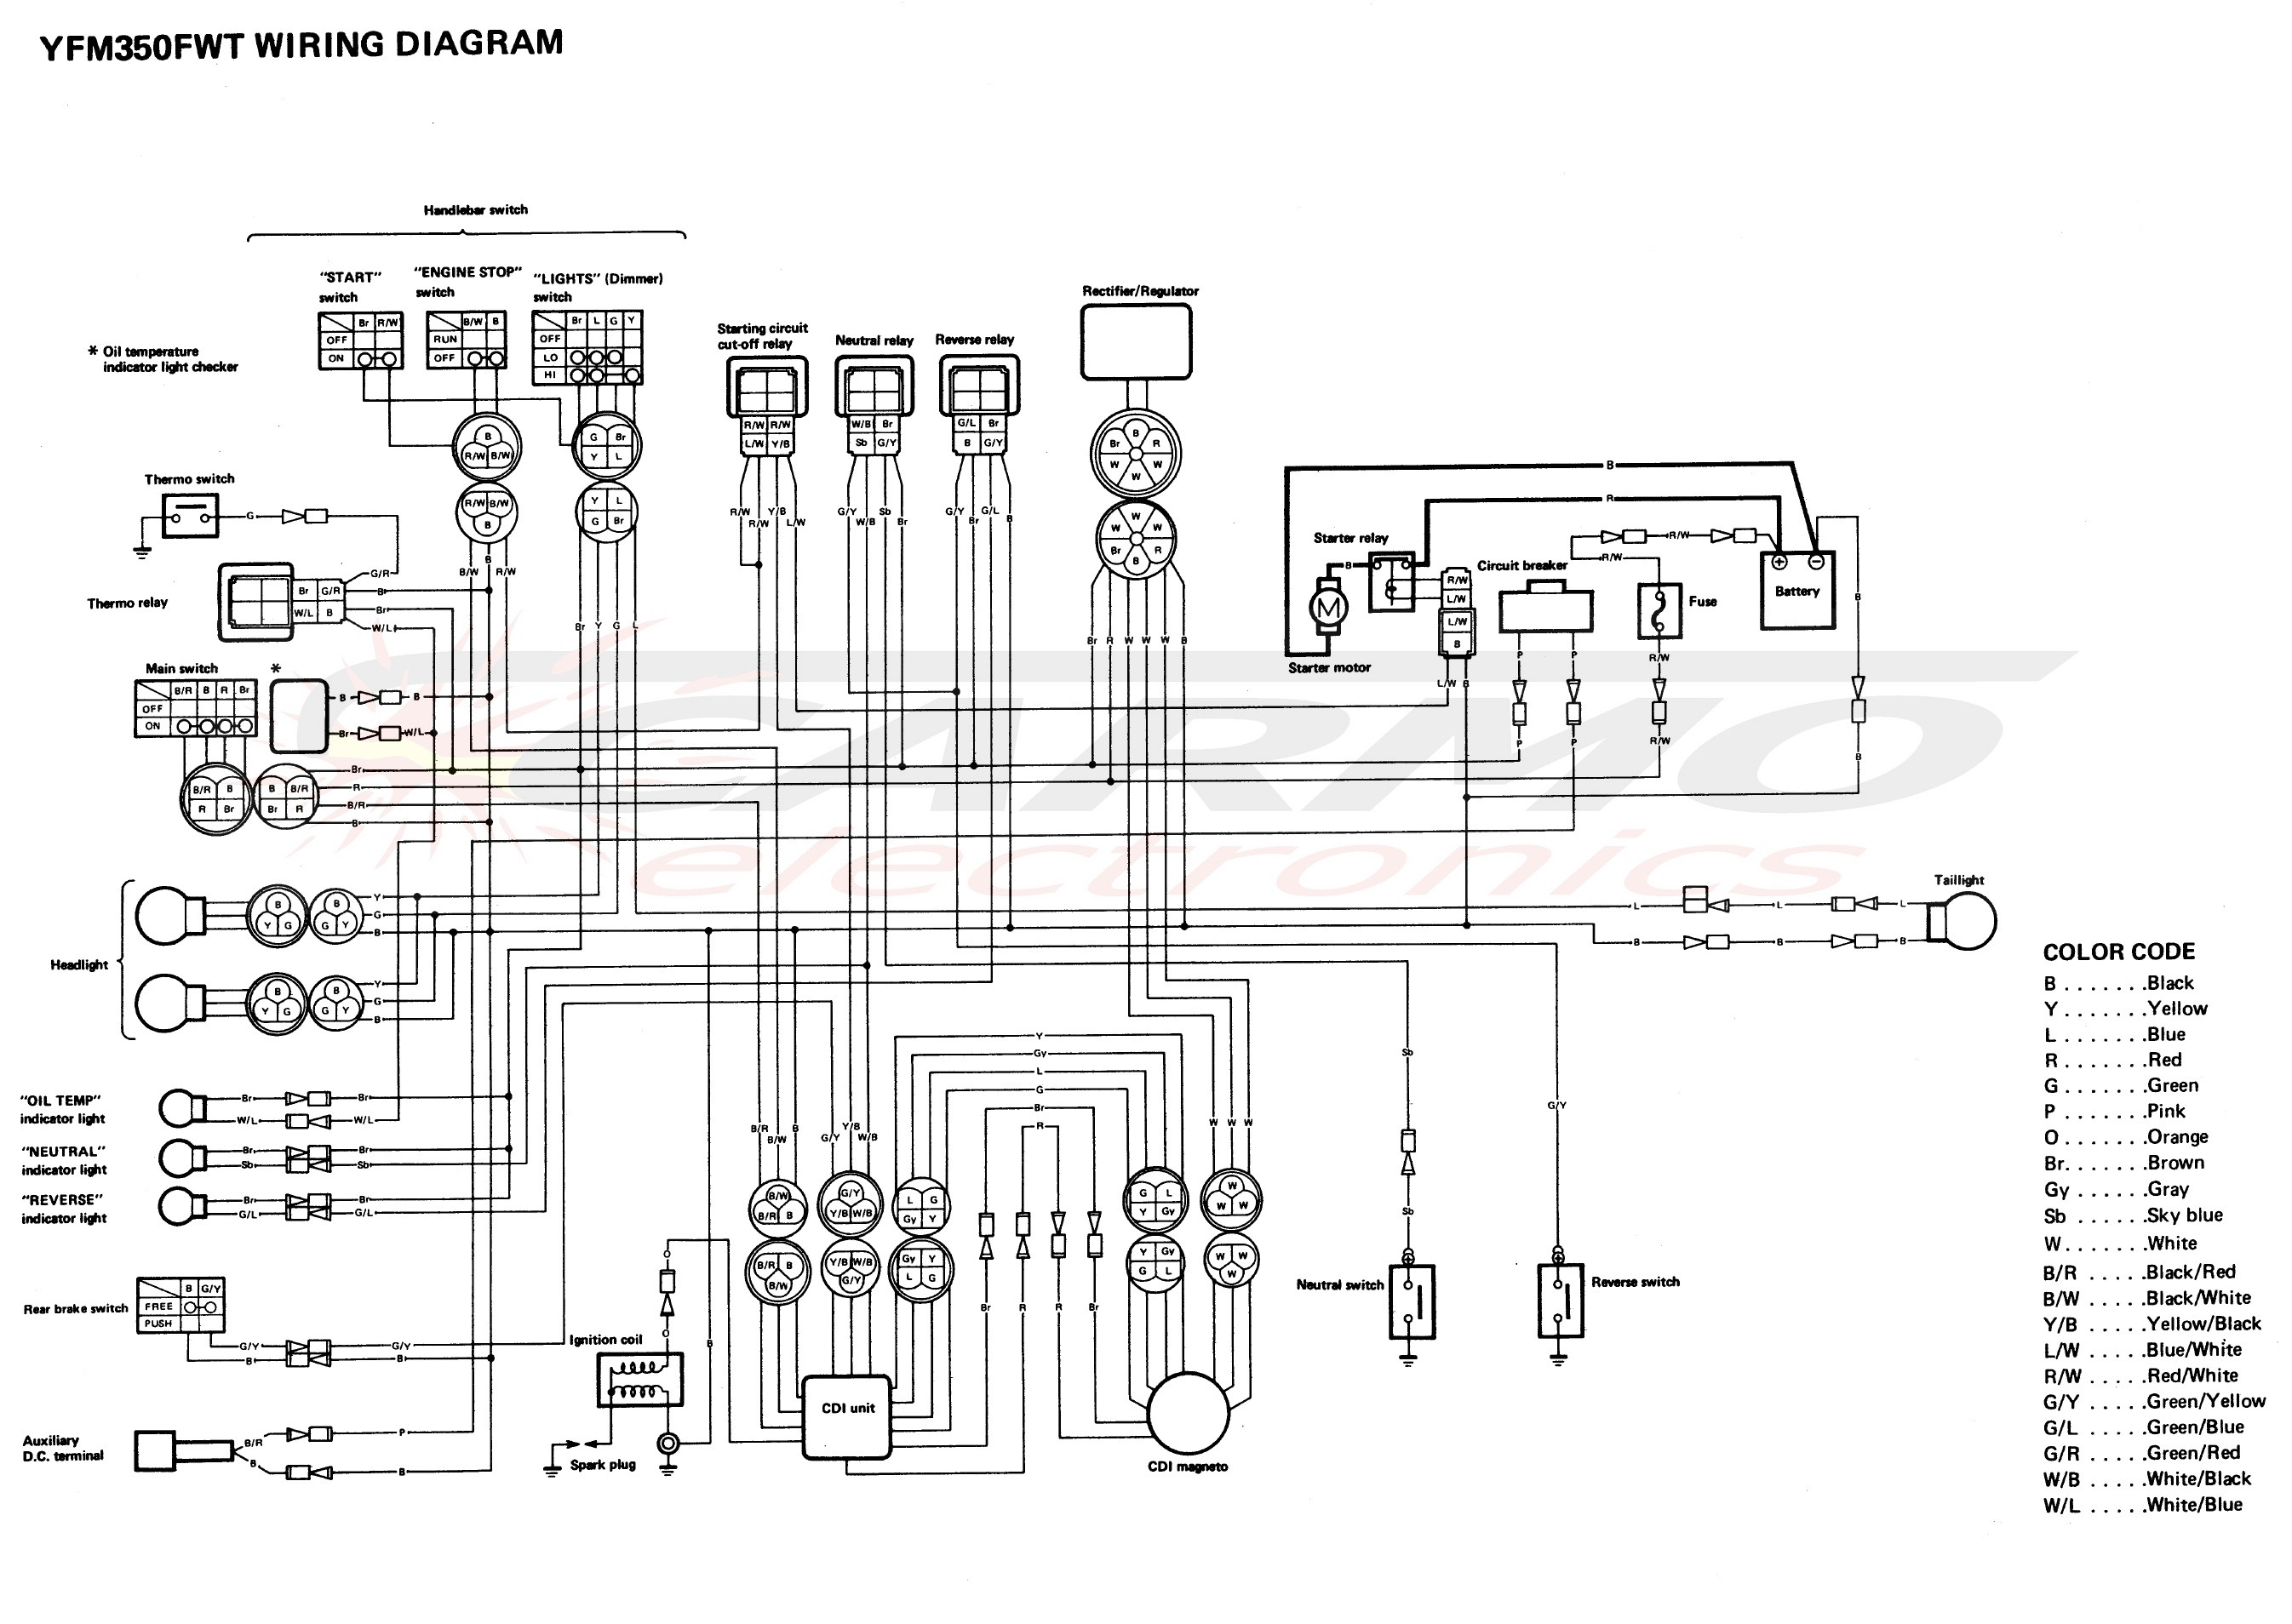 Yamaha Big Bear 350 4x4 Wiring Diagram - Wiring Diagram ...